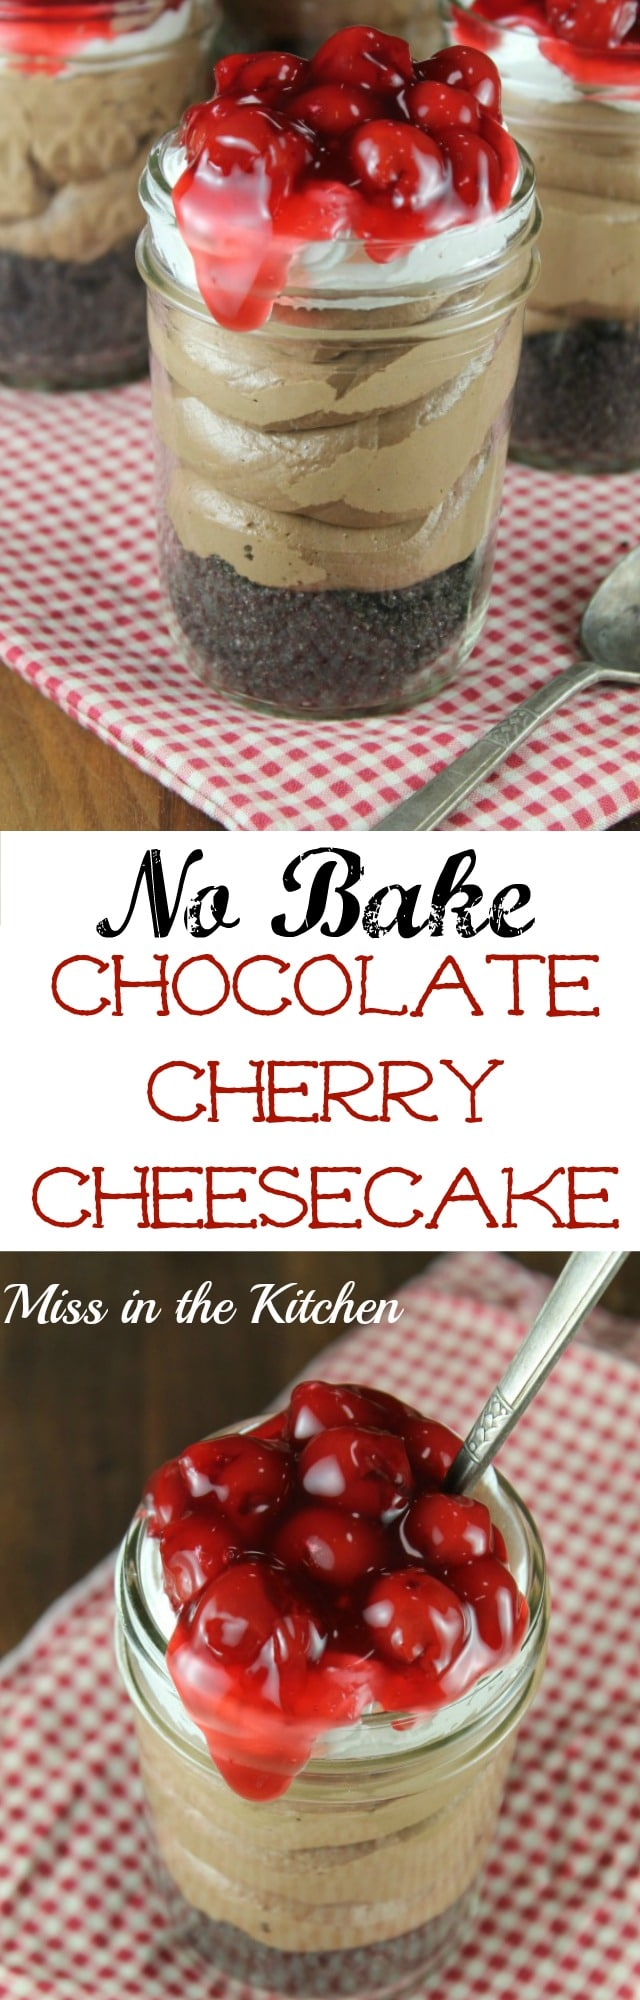 No Bake Chocolate Cherry Cheesecake in a Jar for Wayfair #CherrySweet National Cherry Month. Recipe found at MissintheKitchen.com #Sponsored